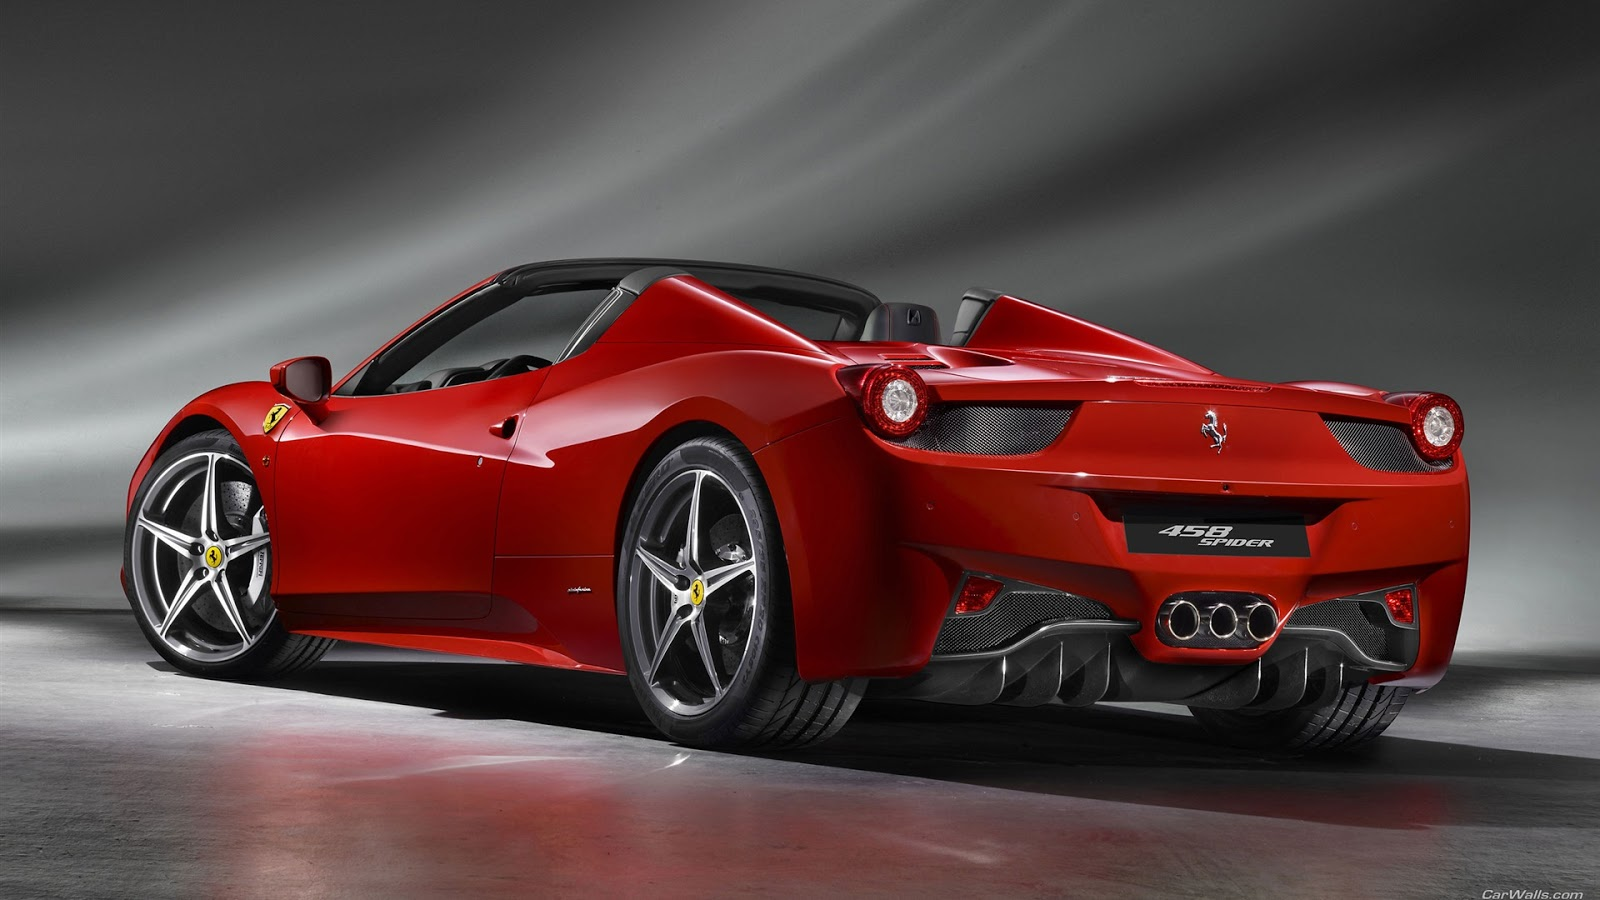 Perfect Ferrari Car Wallpaper Free Download Ferrari Car Images Ferrari Car Photos Car  Wallpaper Download